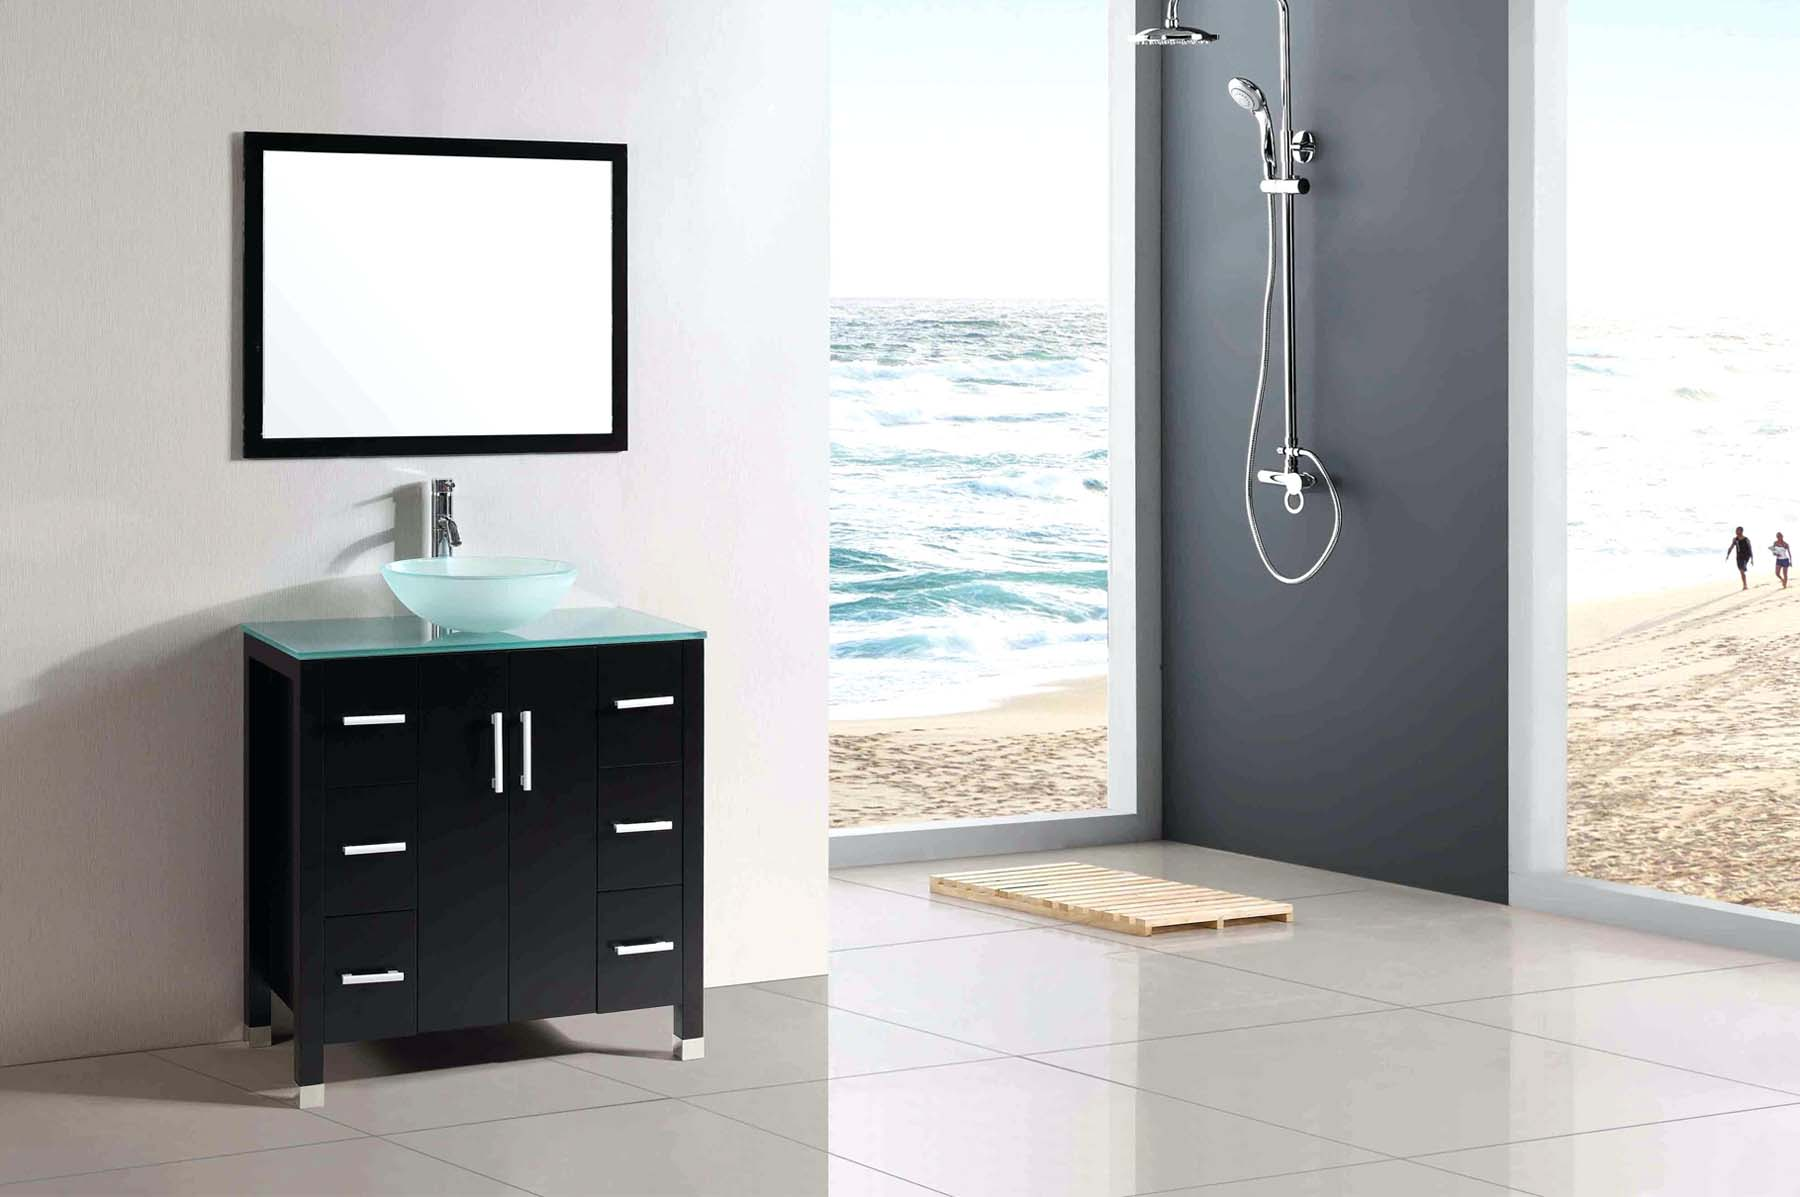 Minimalist modern bathroom design with an open floor plan. Black, gray and white color scheme.